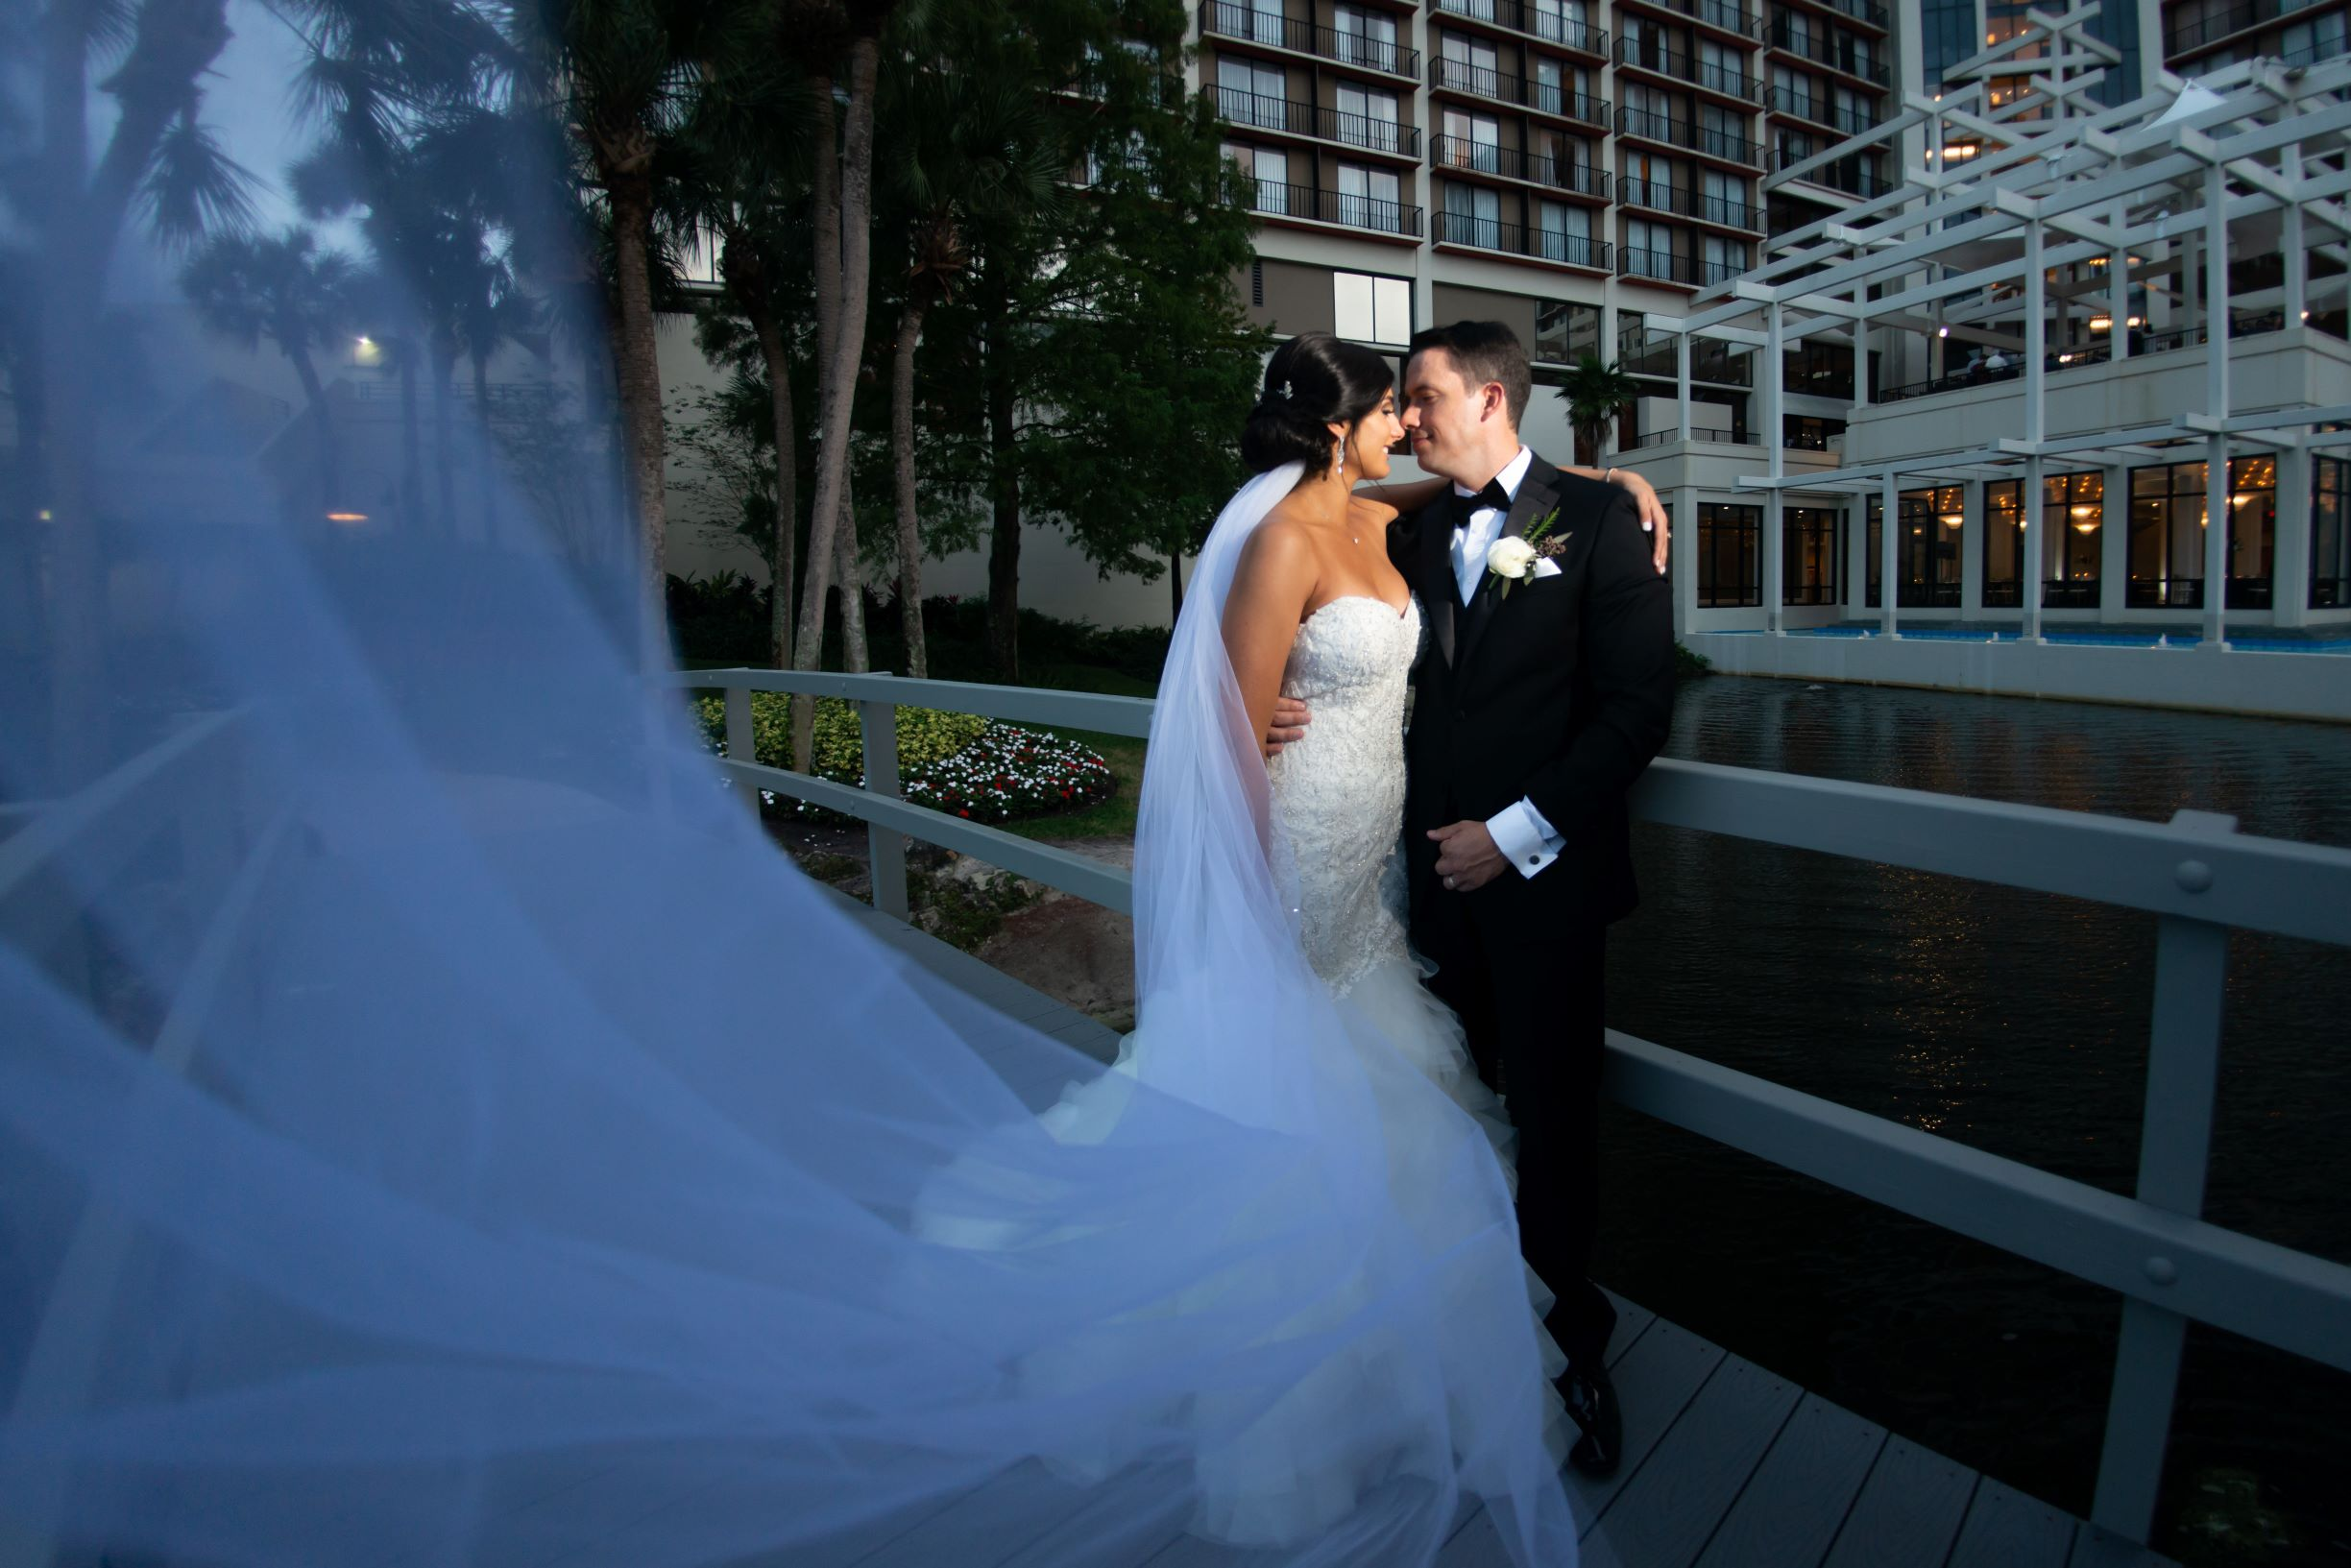 Disney Wedding Venues | Nicole and Kyle at the Hyatt Regency Grand Cypress